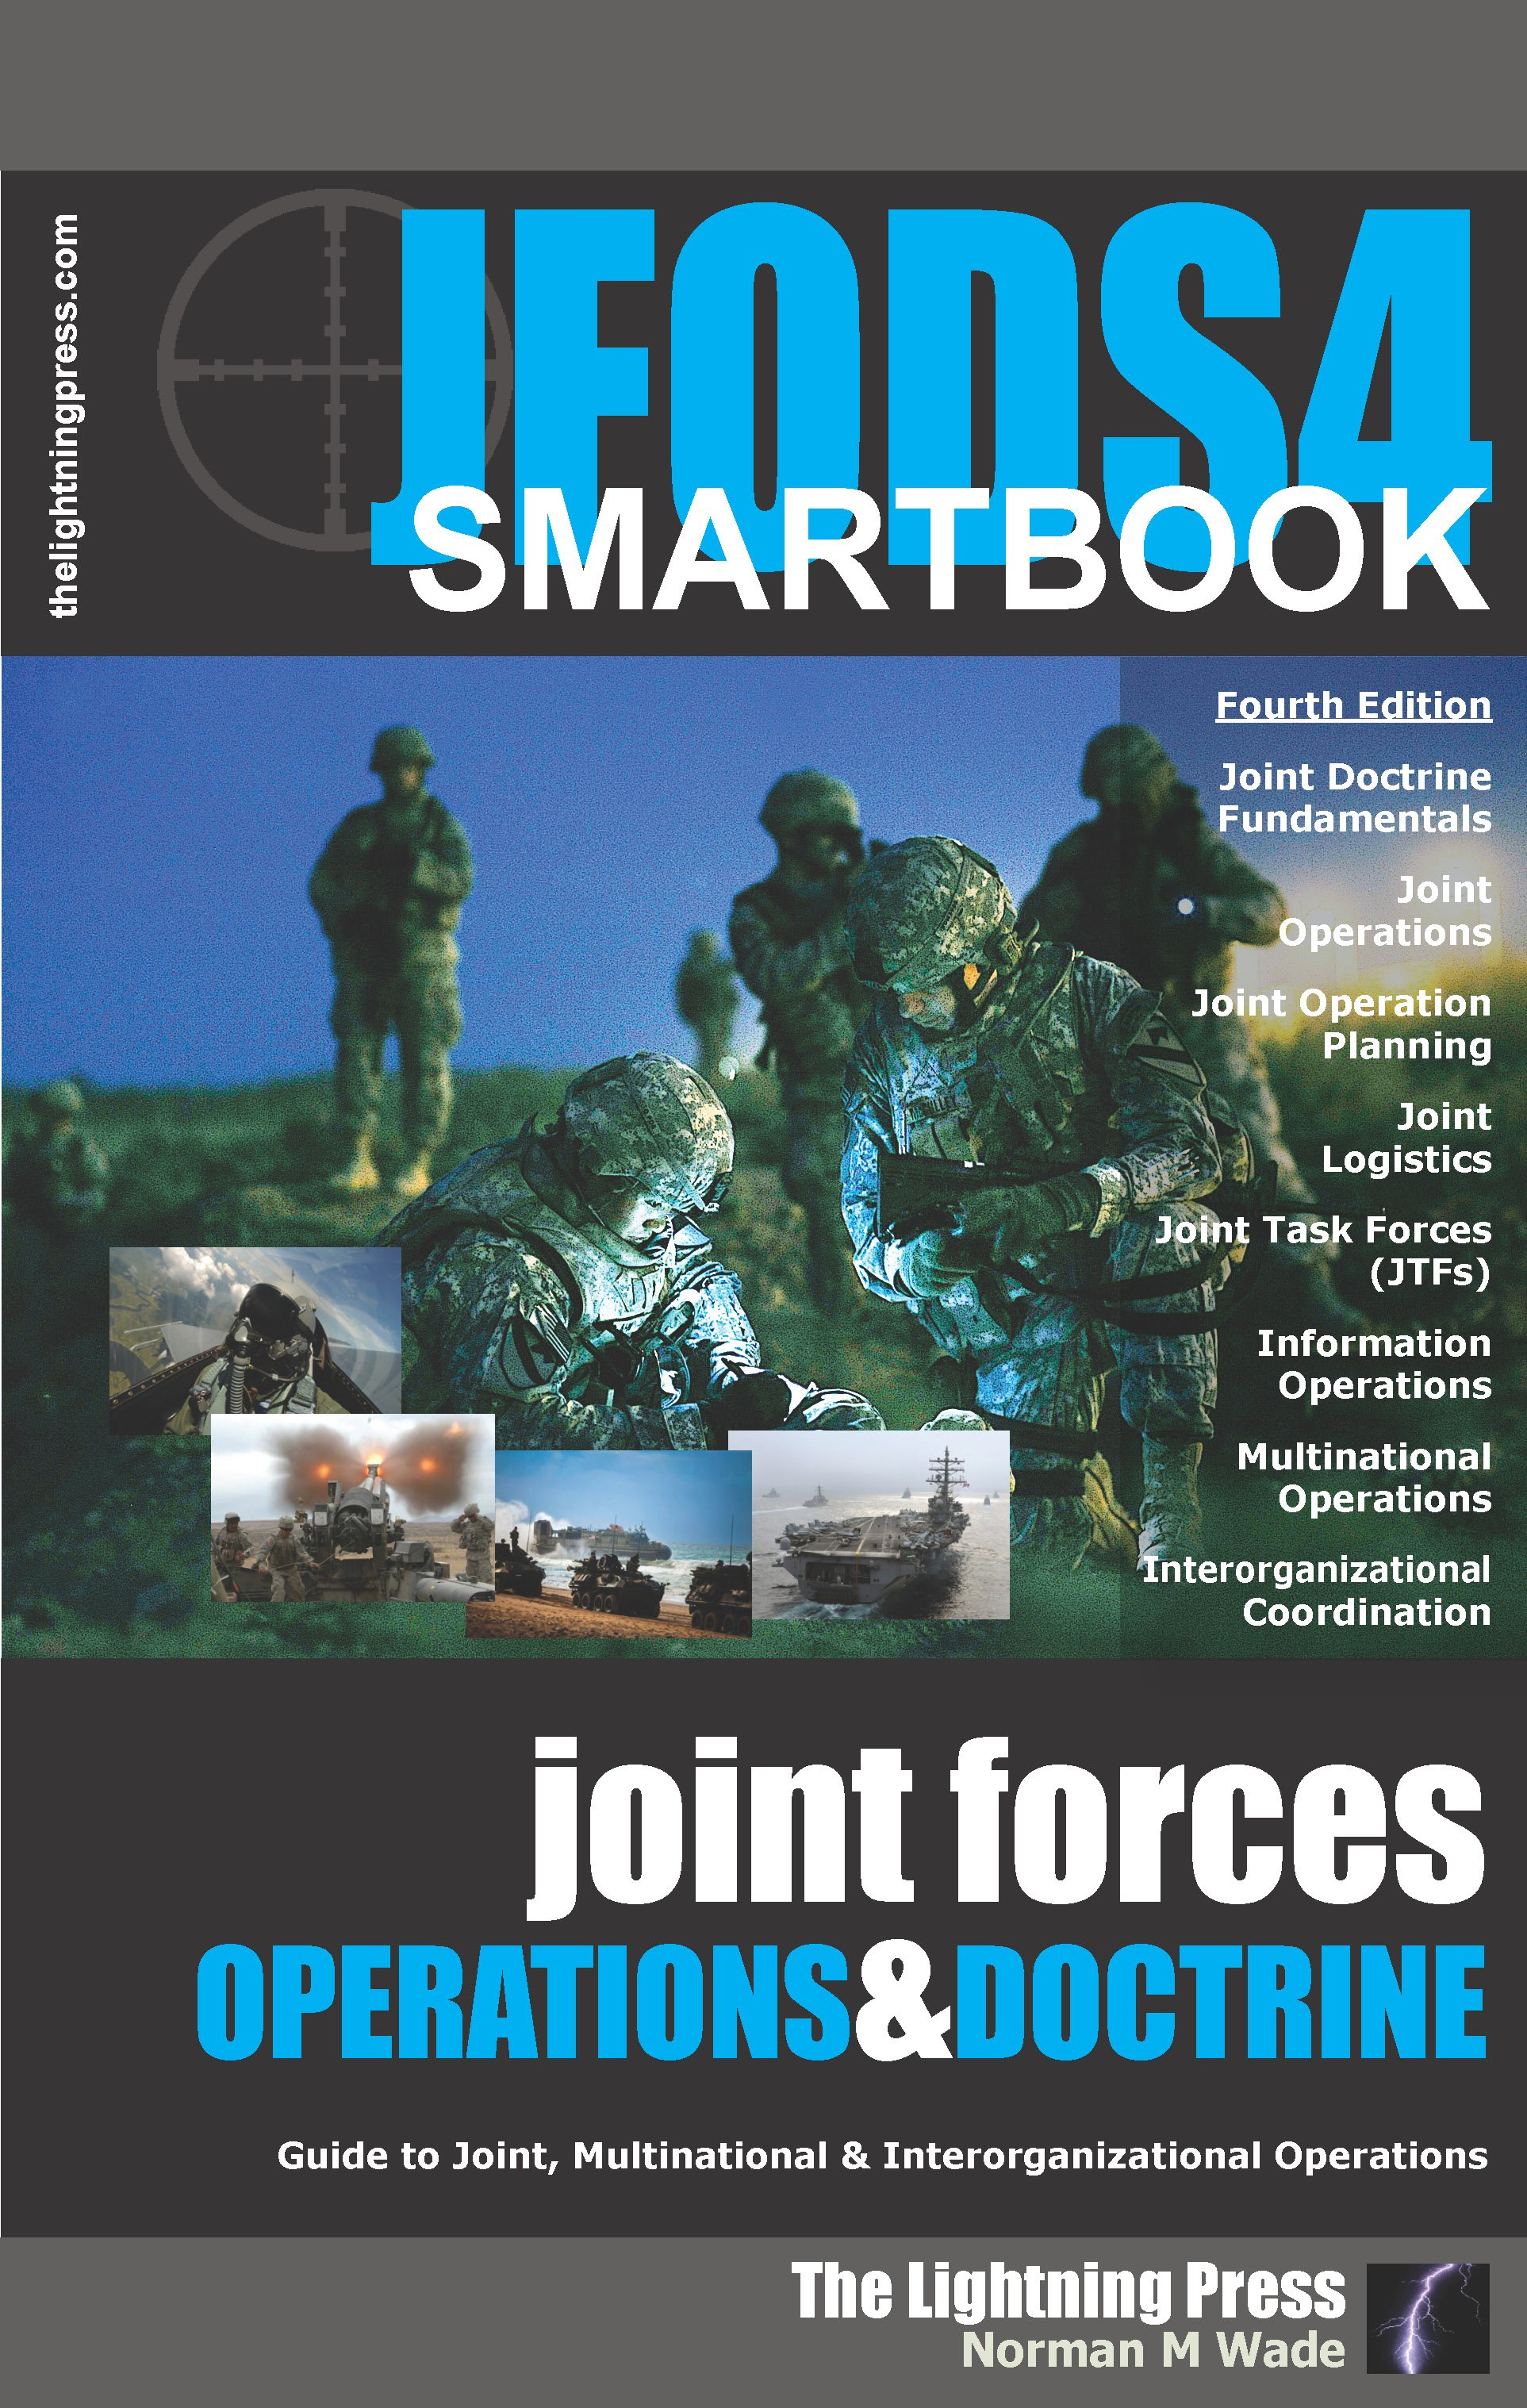 JFODS4: The Joint Forces Operations & Doctrine SMARTbook, 4th Ed.